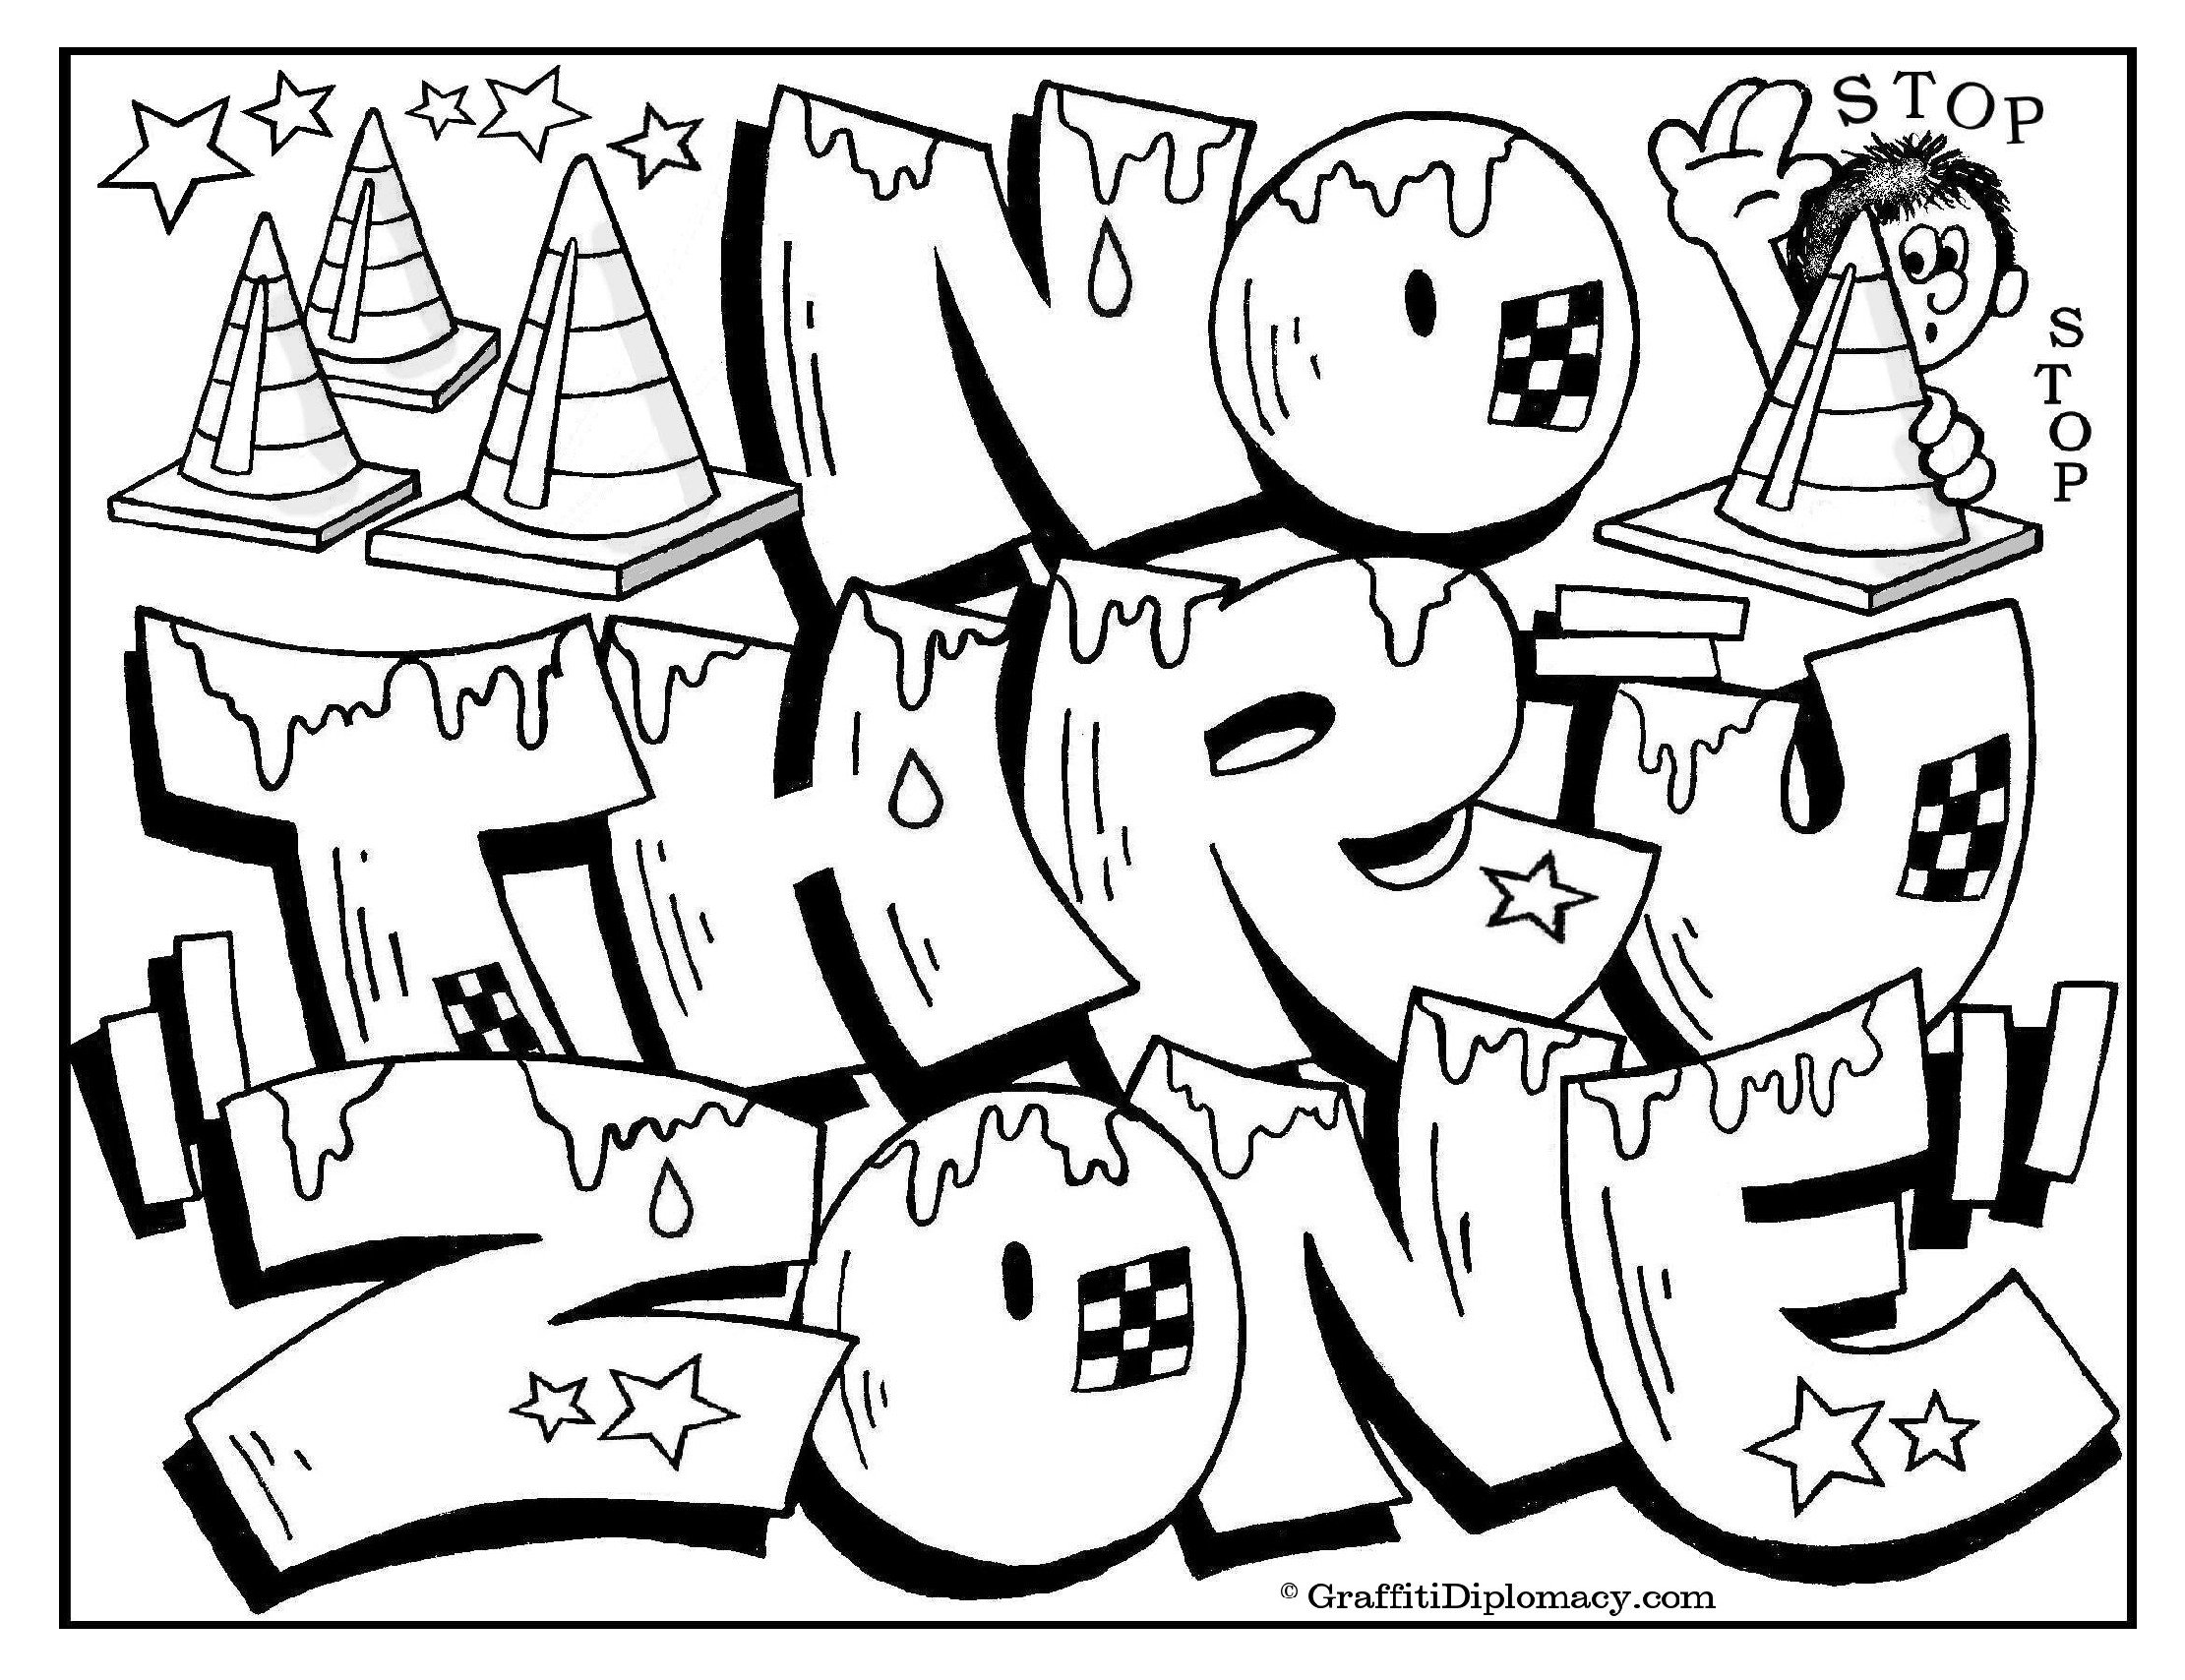 Good 2221x1708 Graffiti Coloring Book Because Y#39s A Crooked Letter By Graffiti